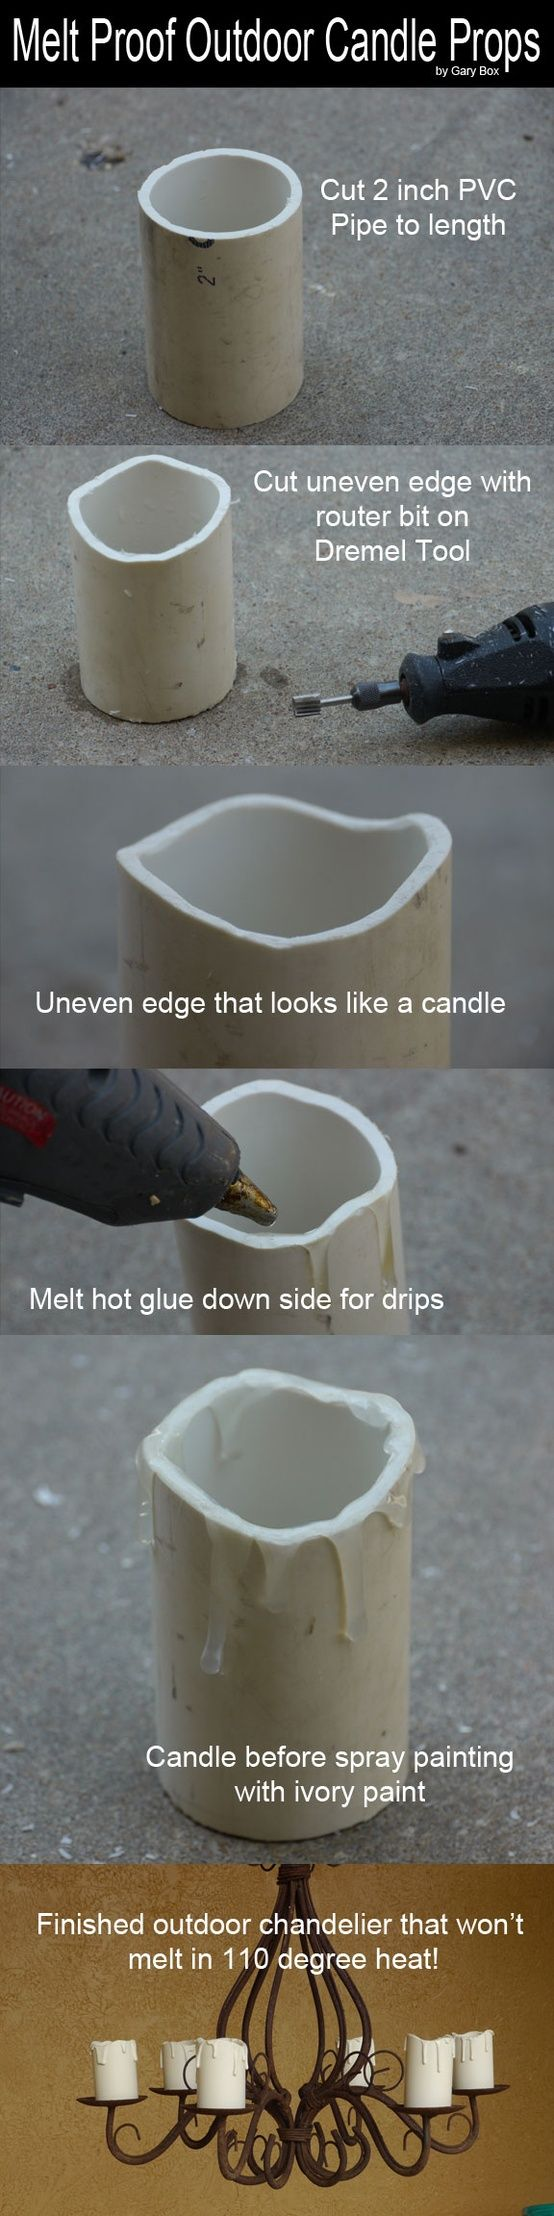 DIY Melt Proof Outdoor Candle Props for Staging